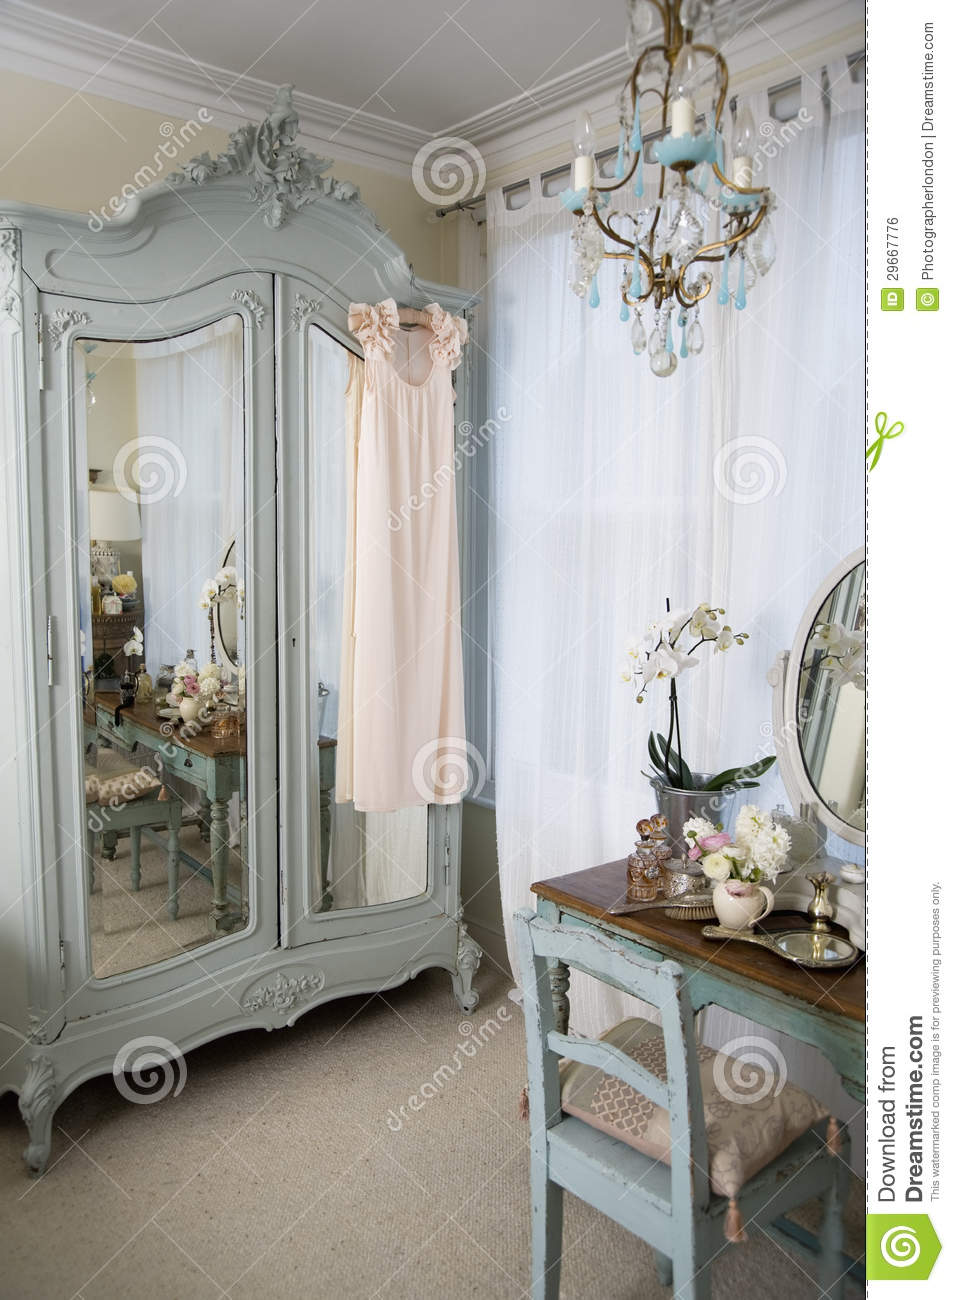 hanging chair bedroom stretch dining covers australia dressing table in old-fashioned room royalty free stock image - image: 29667776